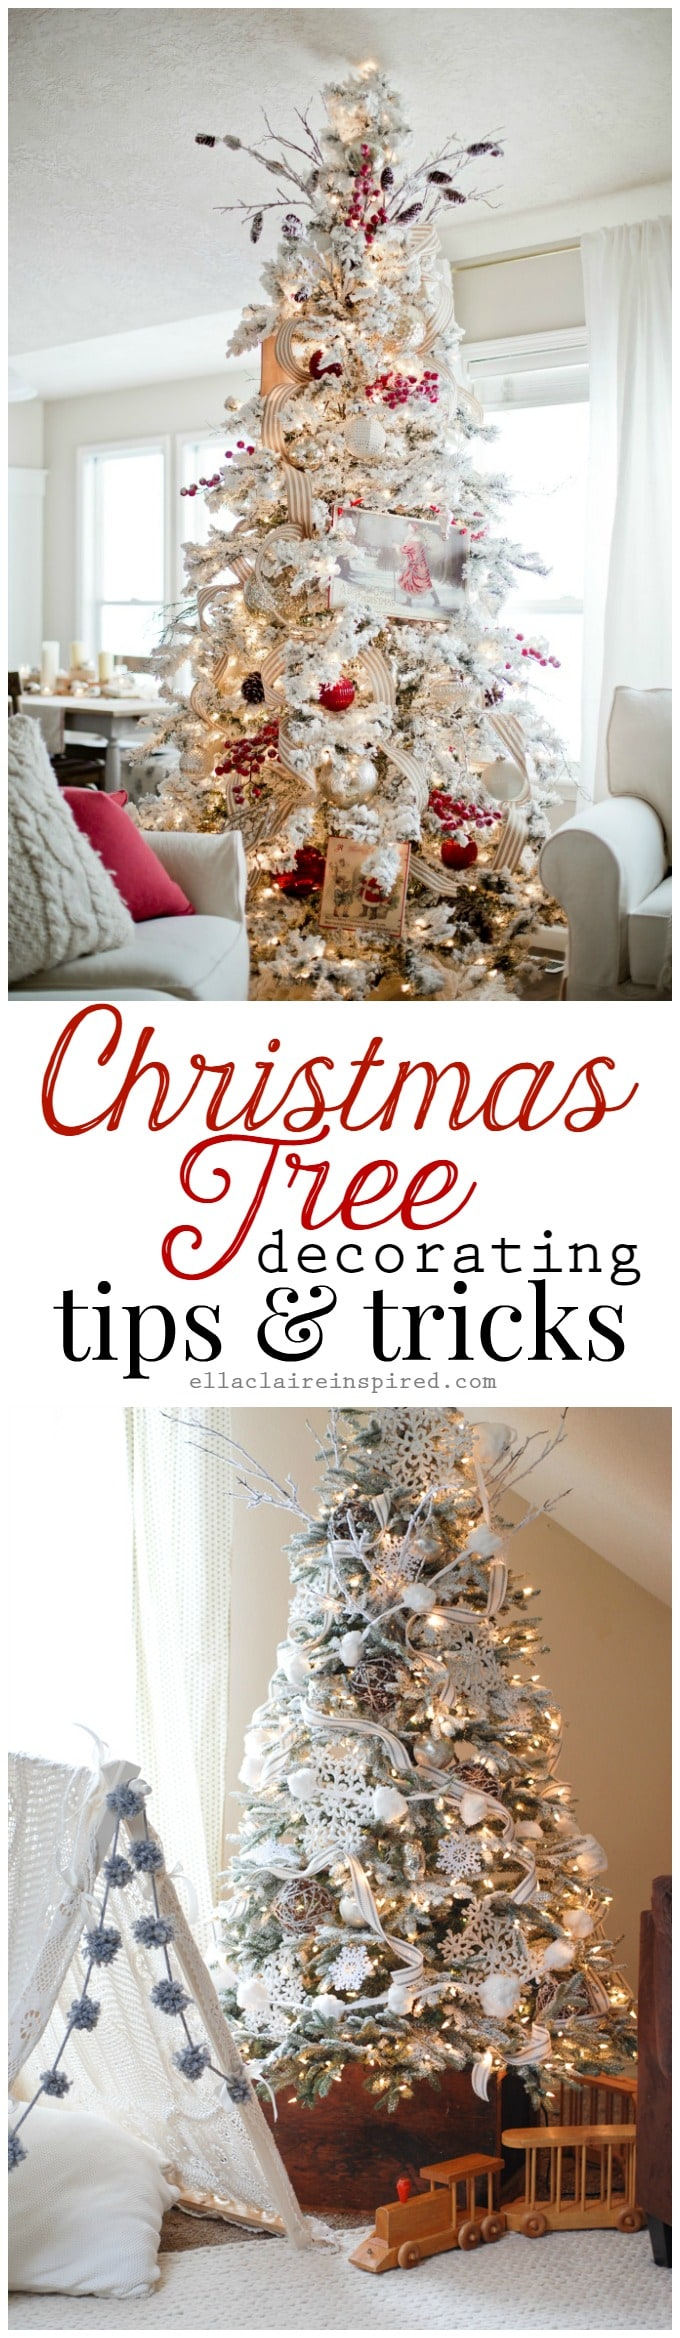 revealed the 6 biggest christmas decorating trends this year according to pinterest 4